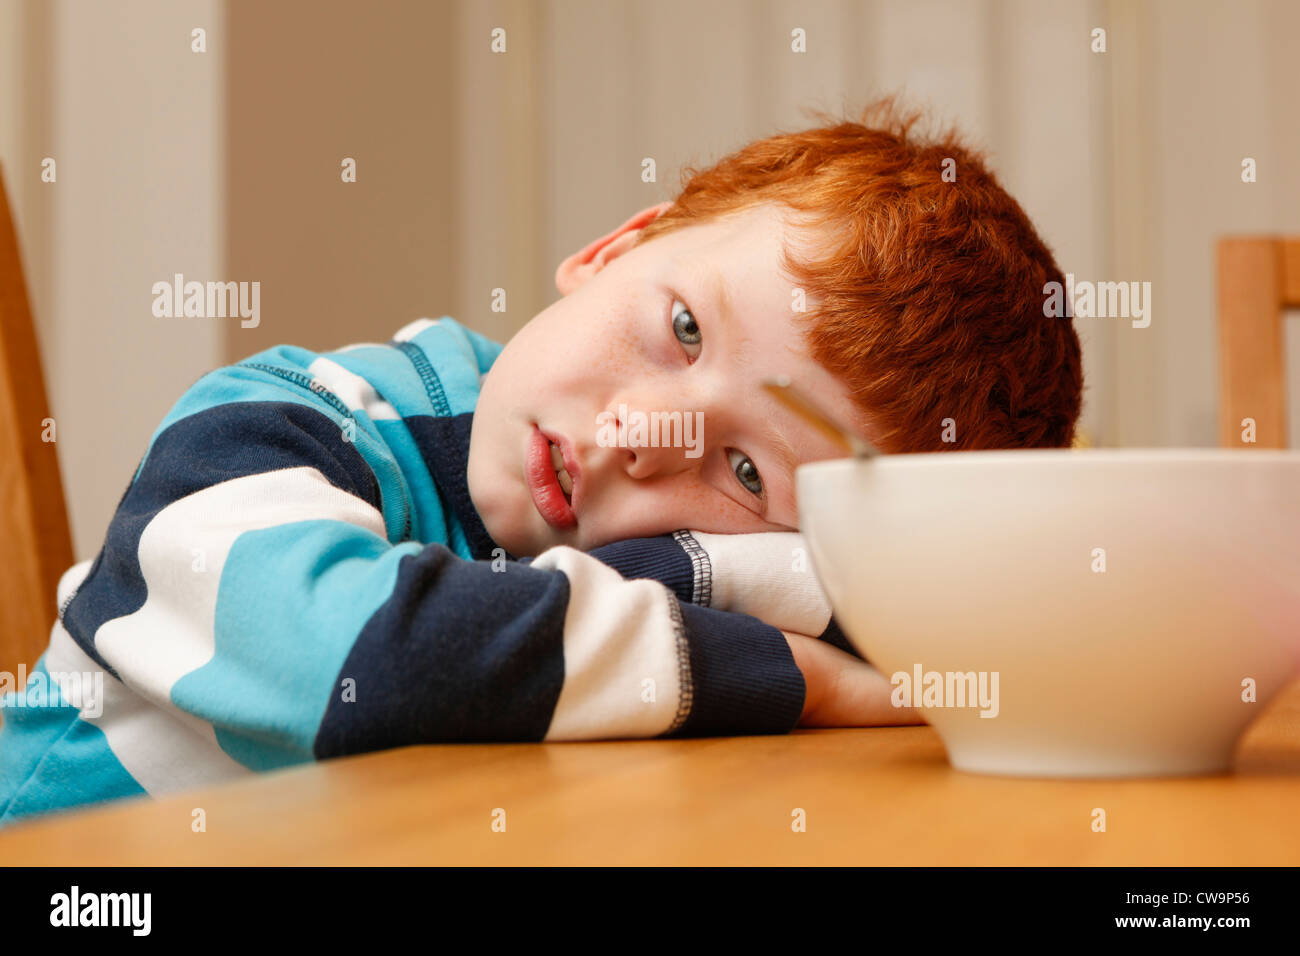 8 Year old boy tired at the breakfast table - Stock Image